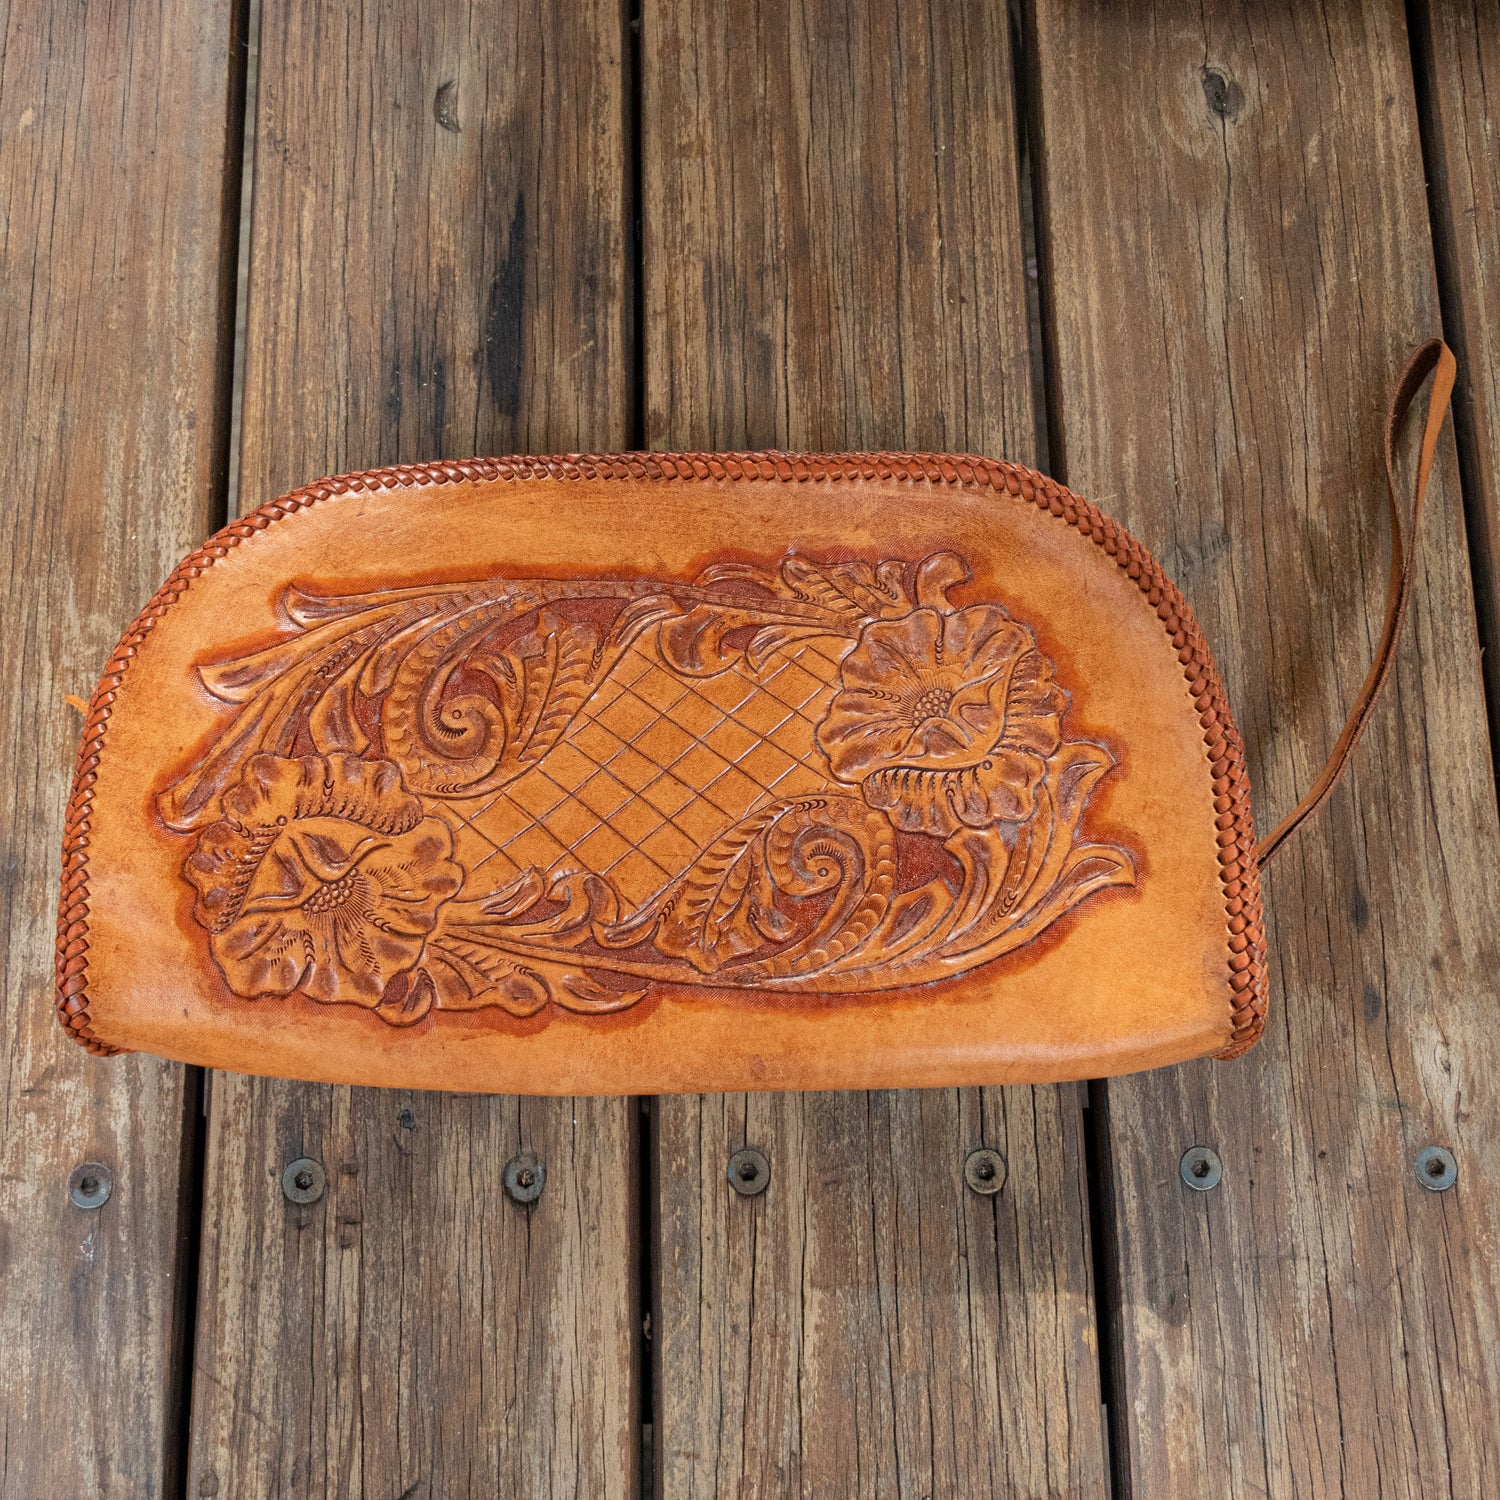 Hand Carved Vintage Clutch